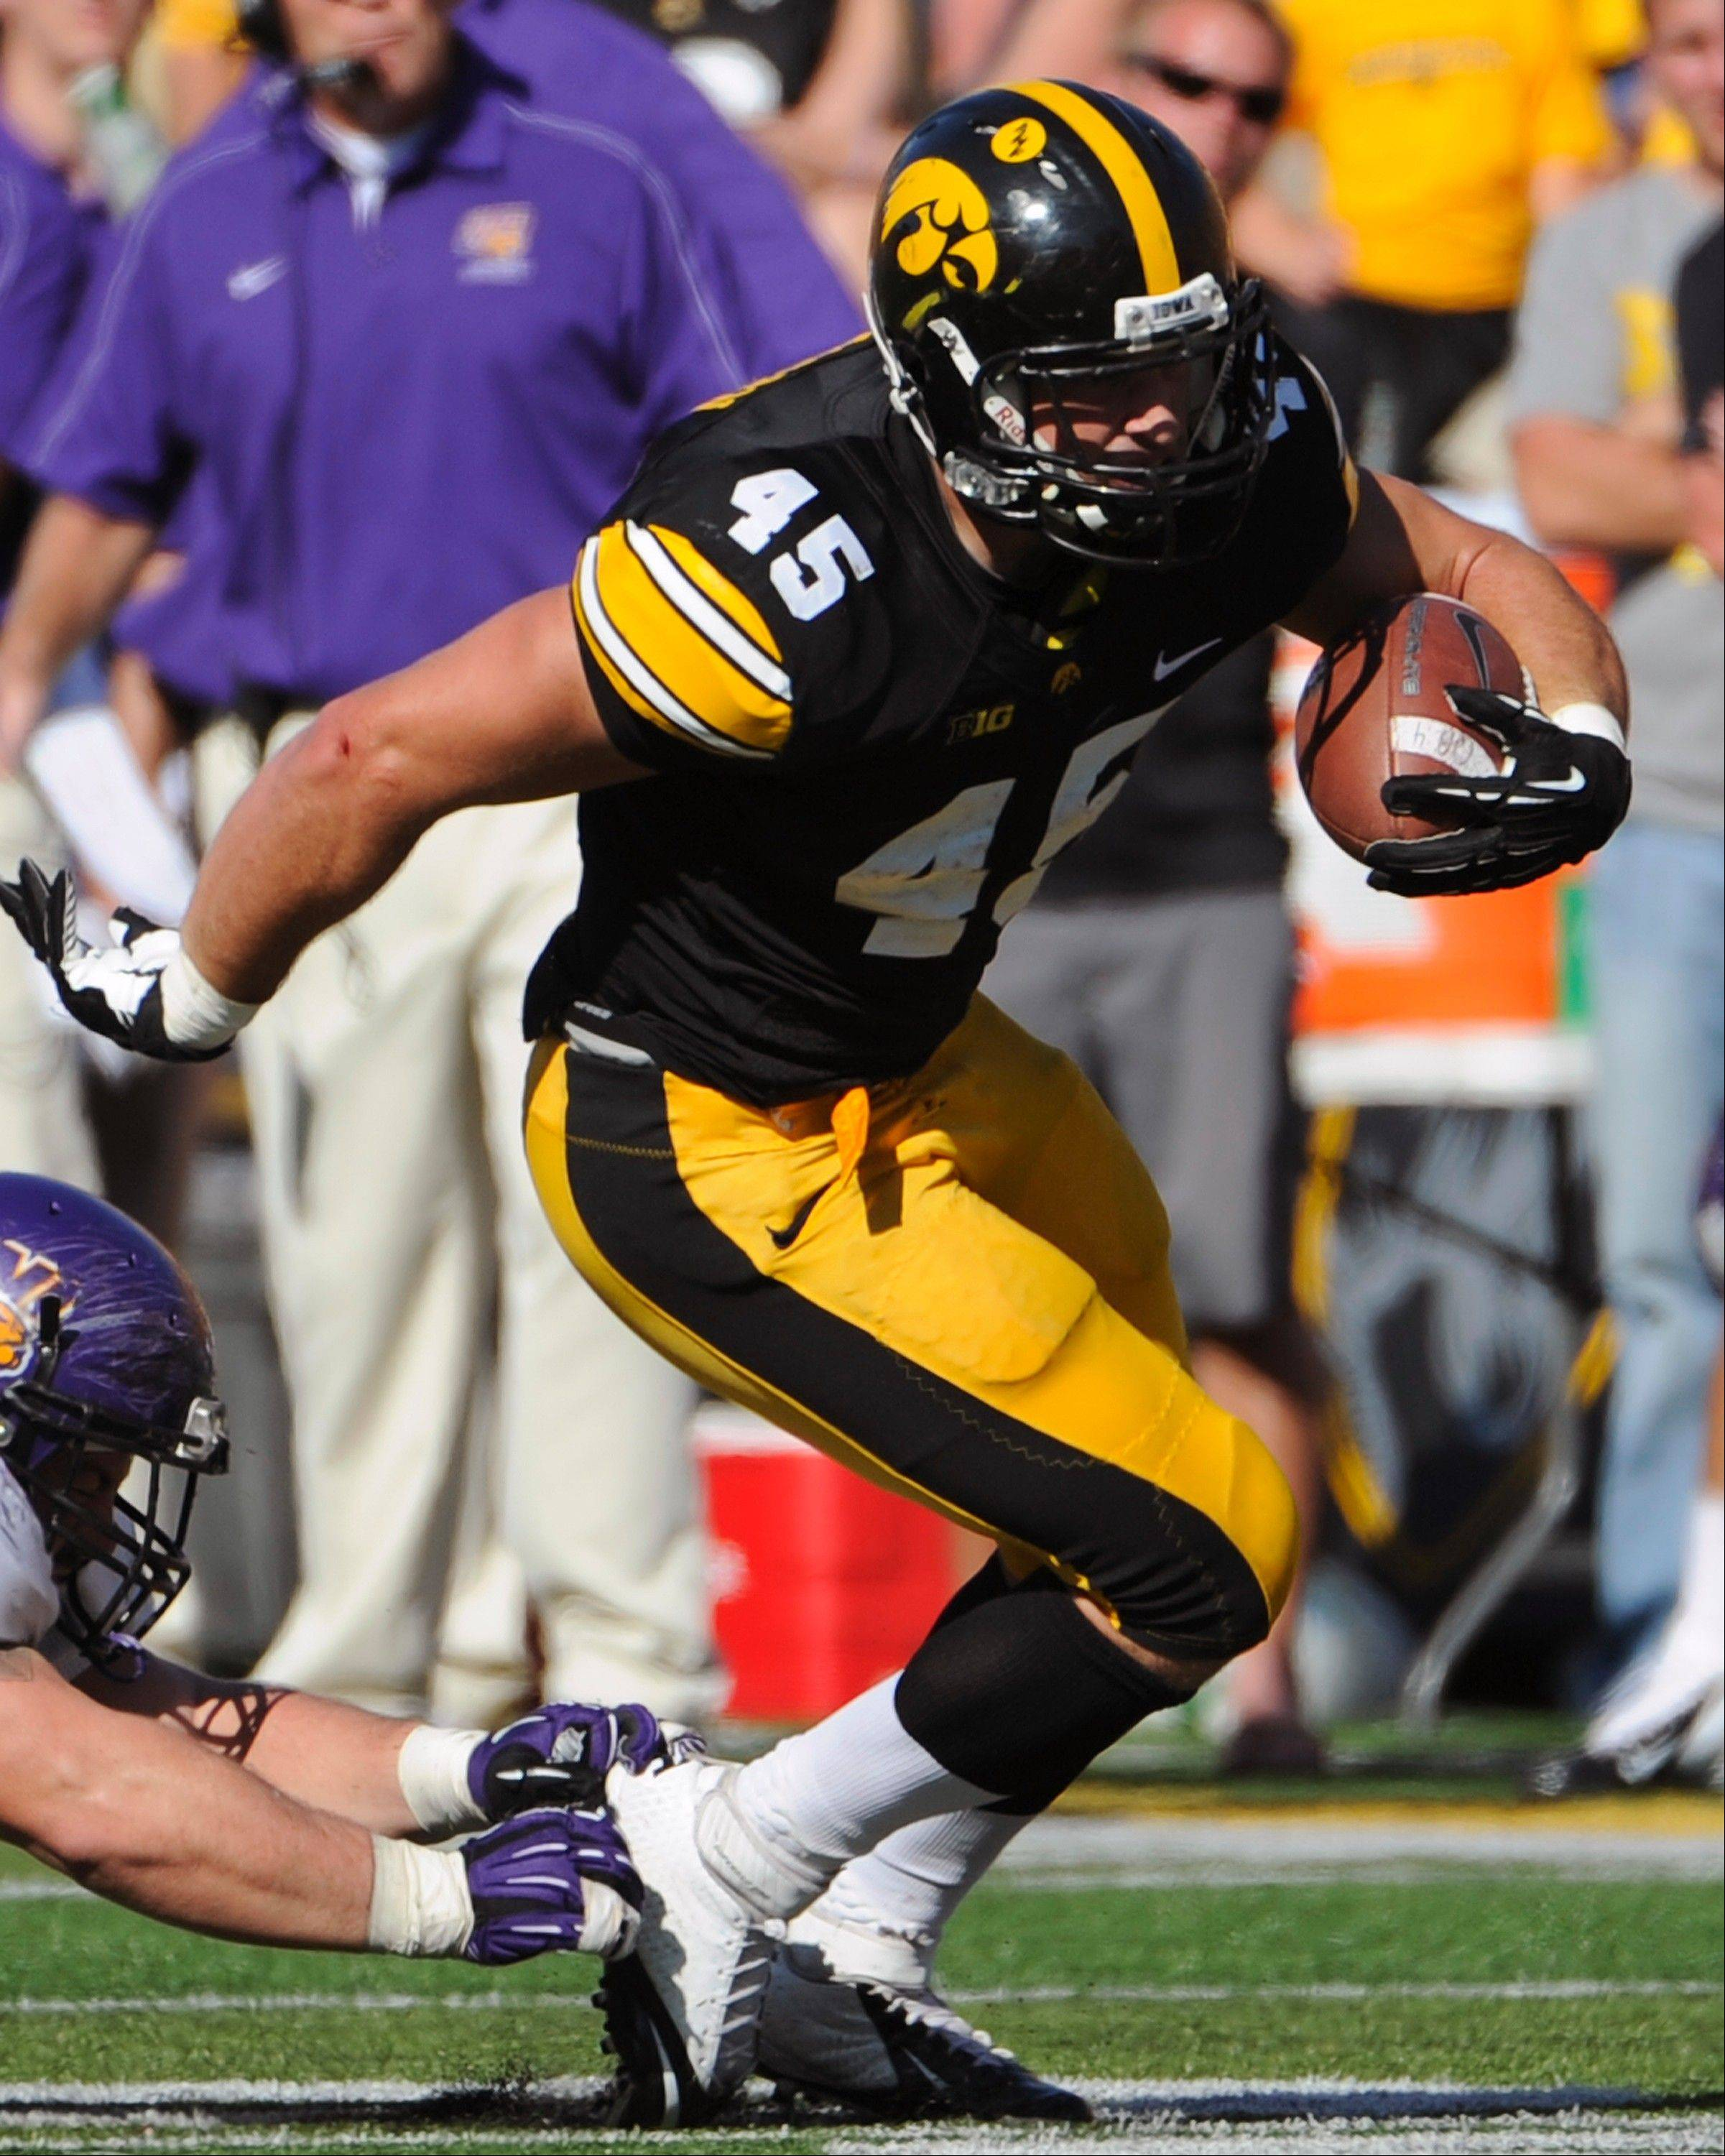 Stevenson product Mark Weisman has beaten the odds by becoming a standout in Iowa's backfield.